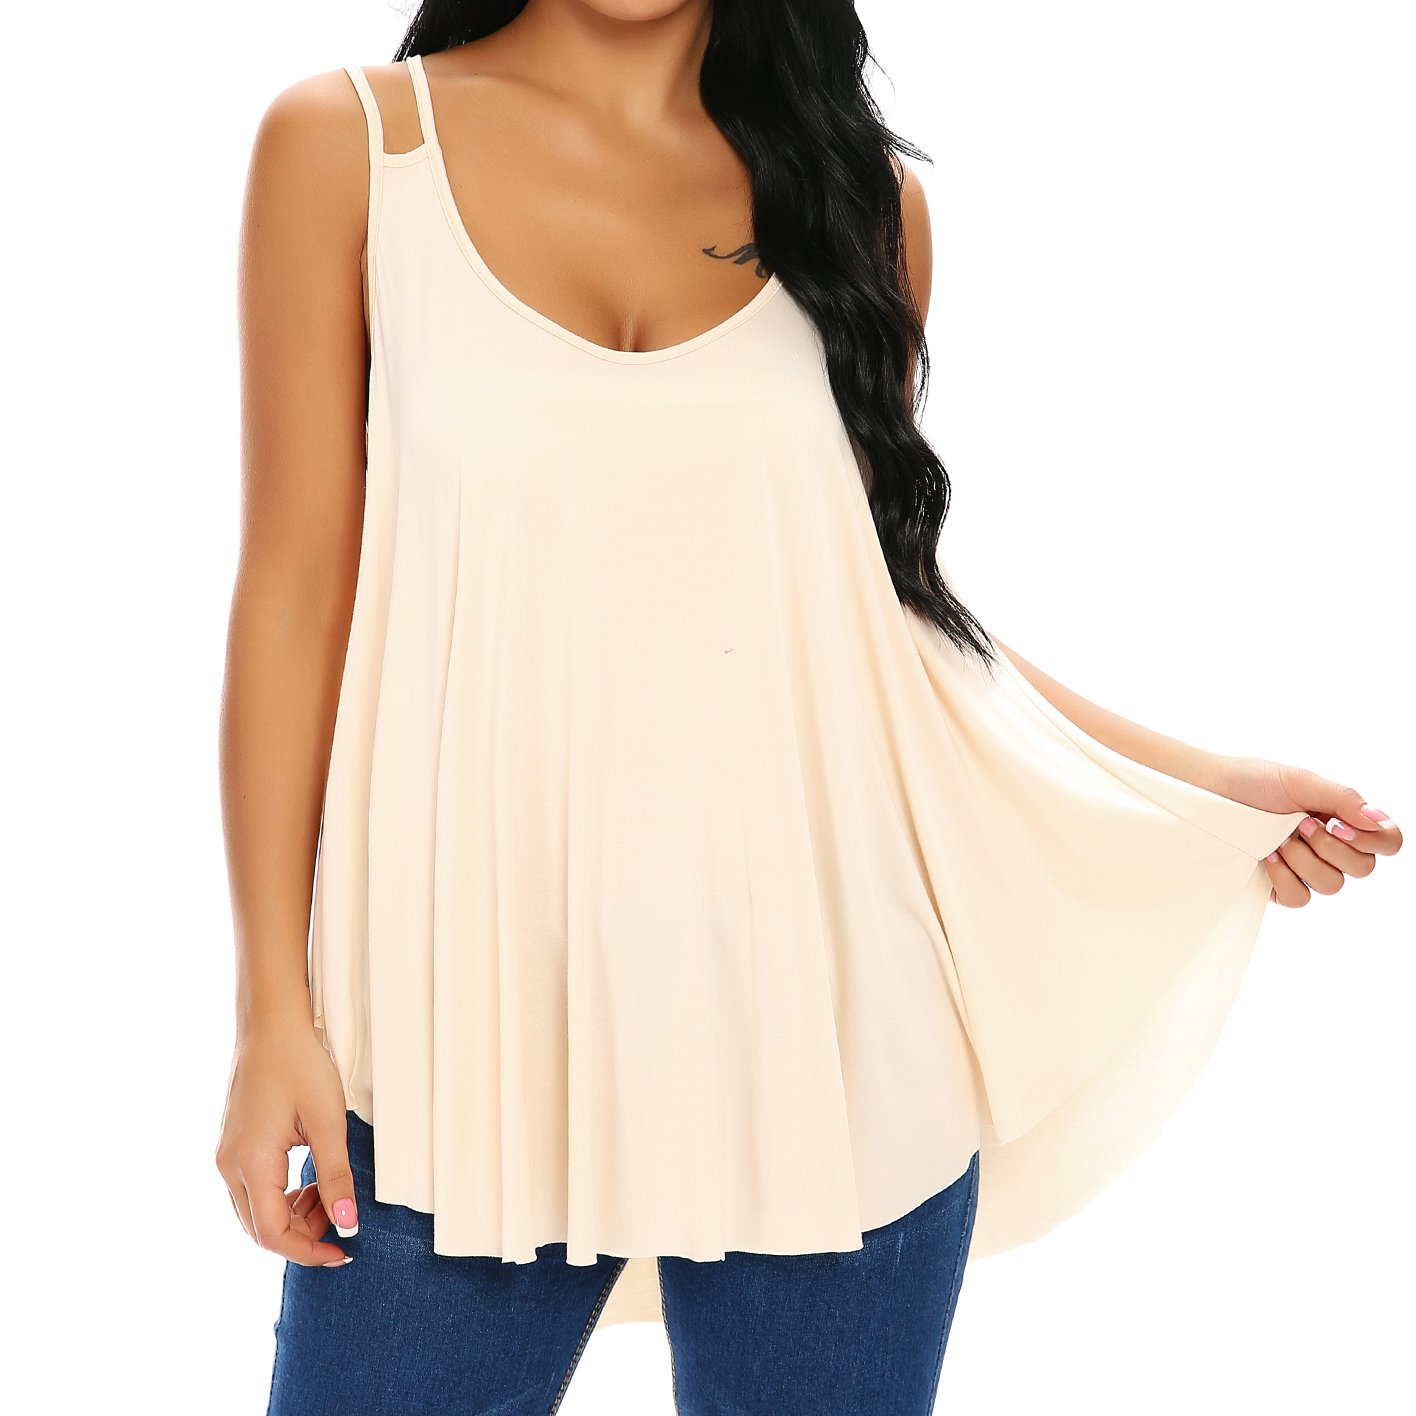 ad1183d17eac7 Top 10 wholesale Loose Cami Tops - Chinabrands.com